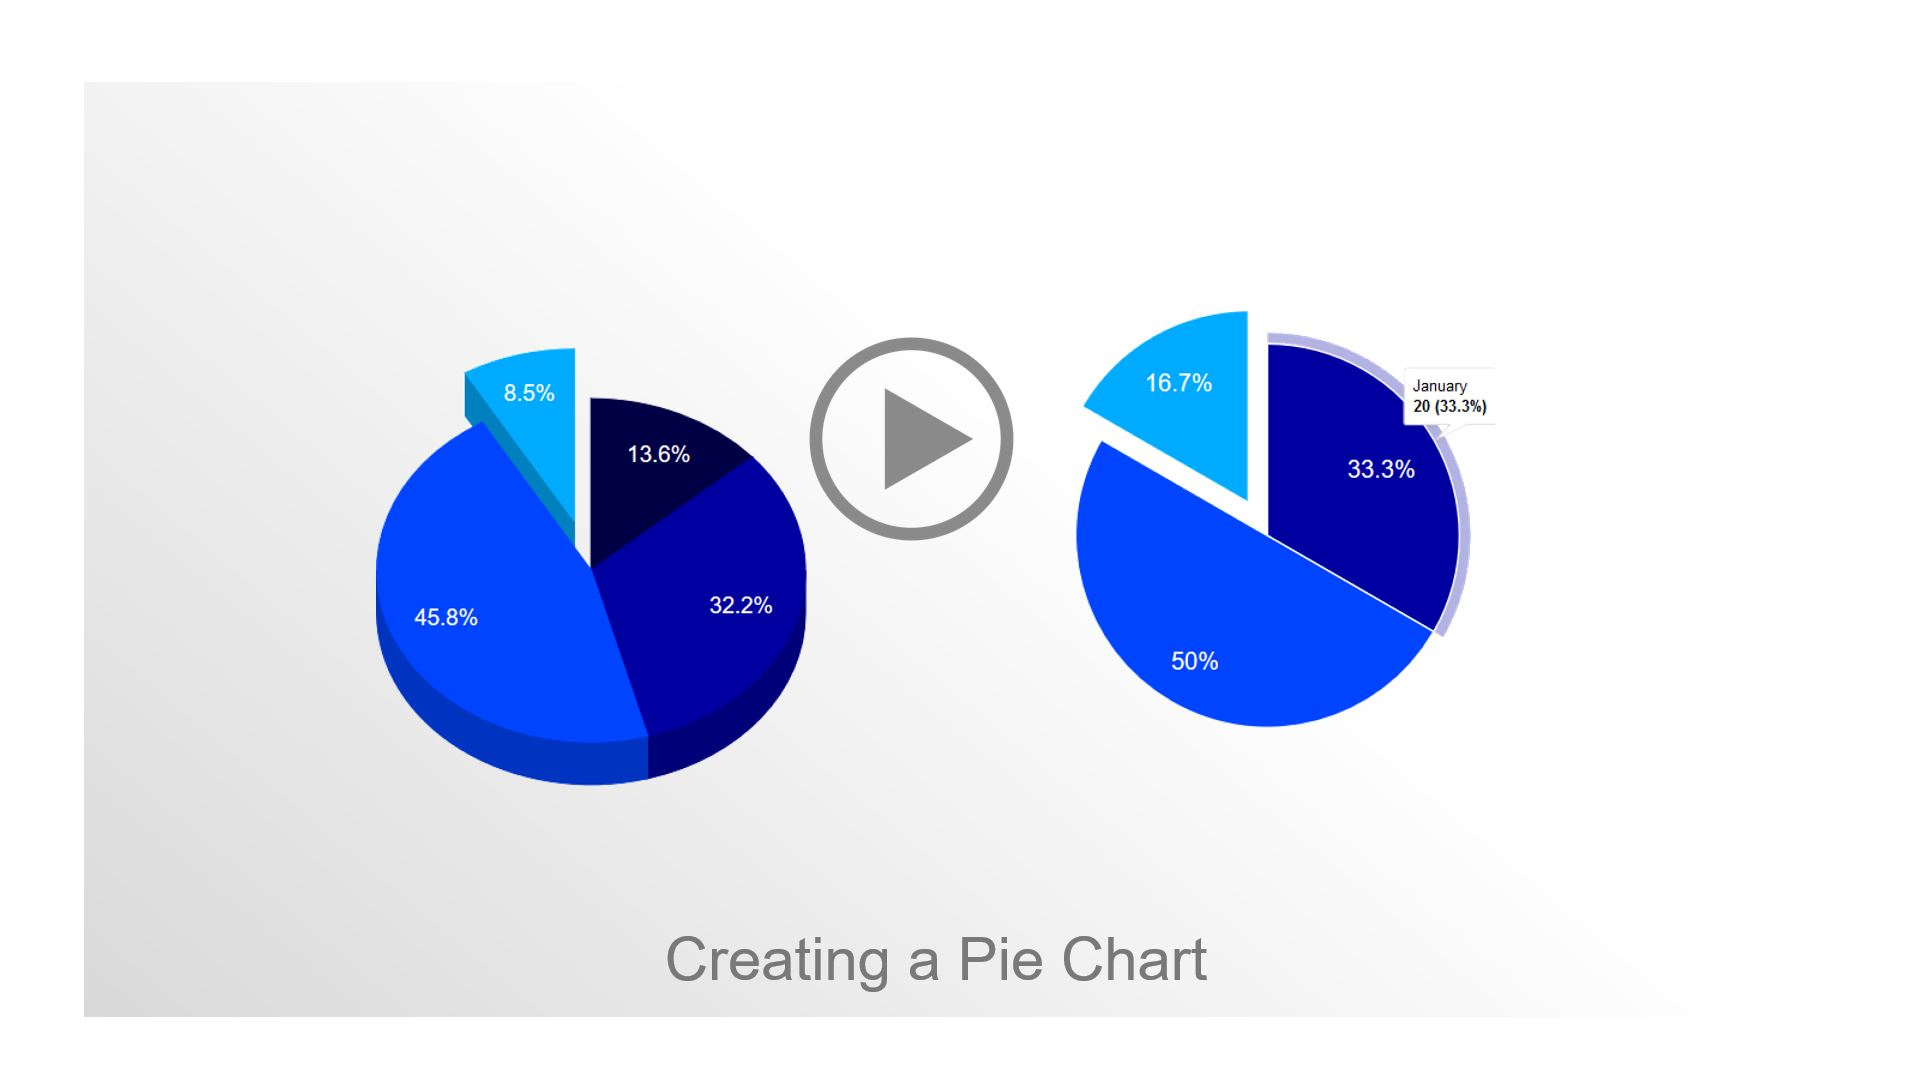 Creating a pie chart in Axure, Tutorial